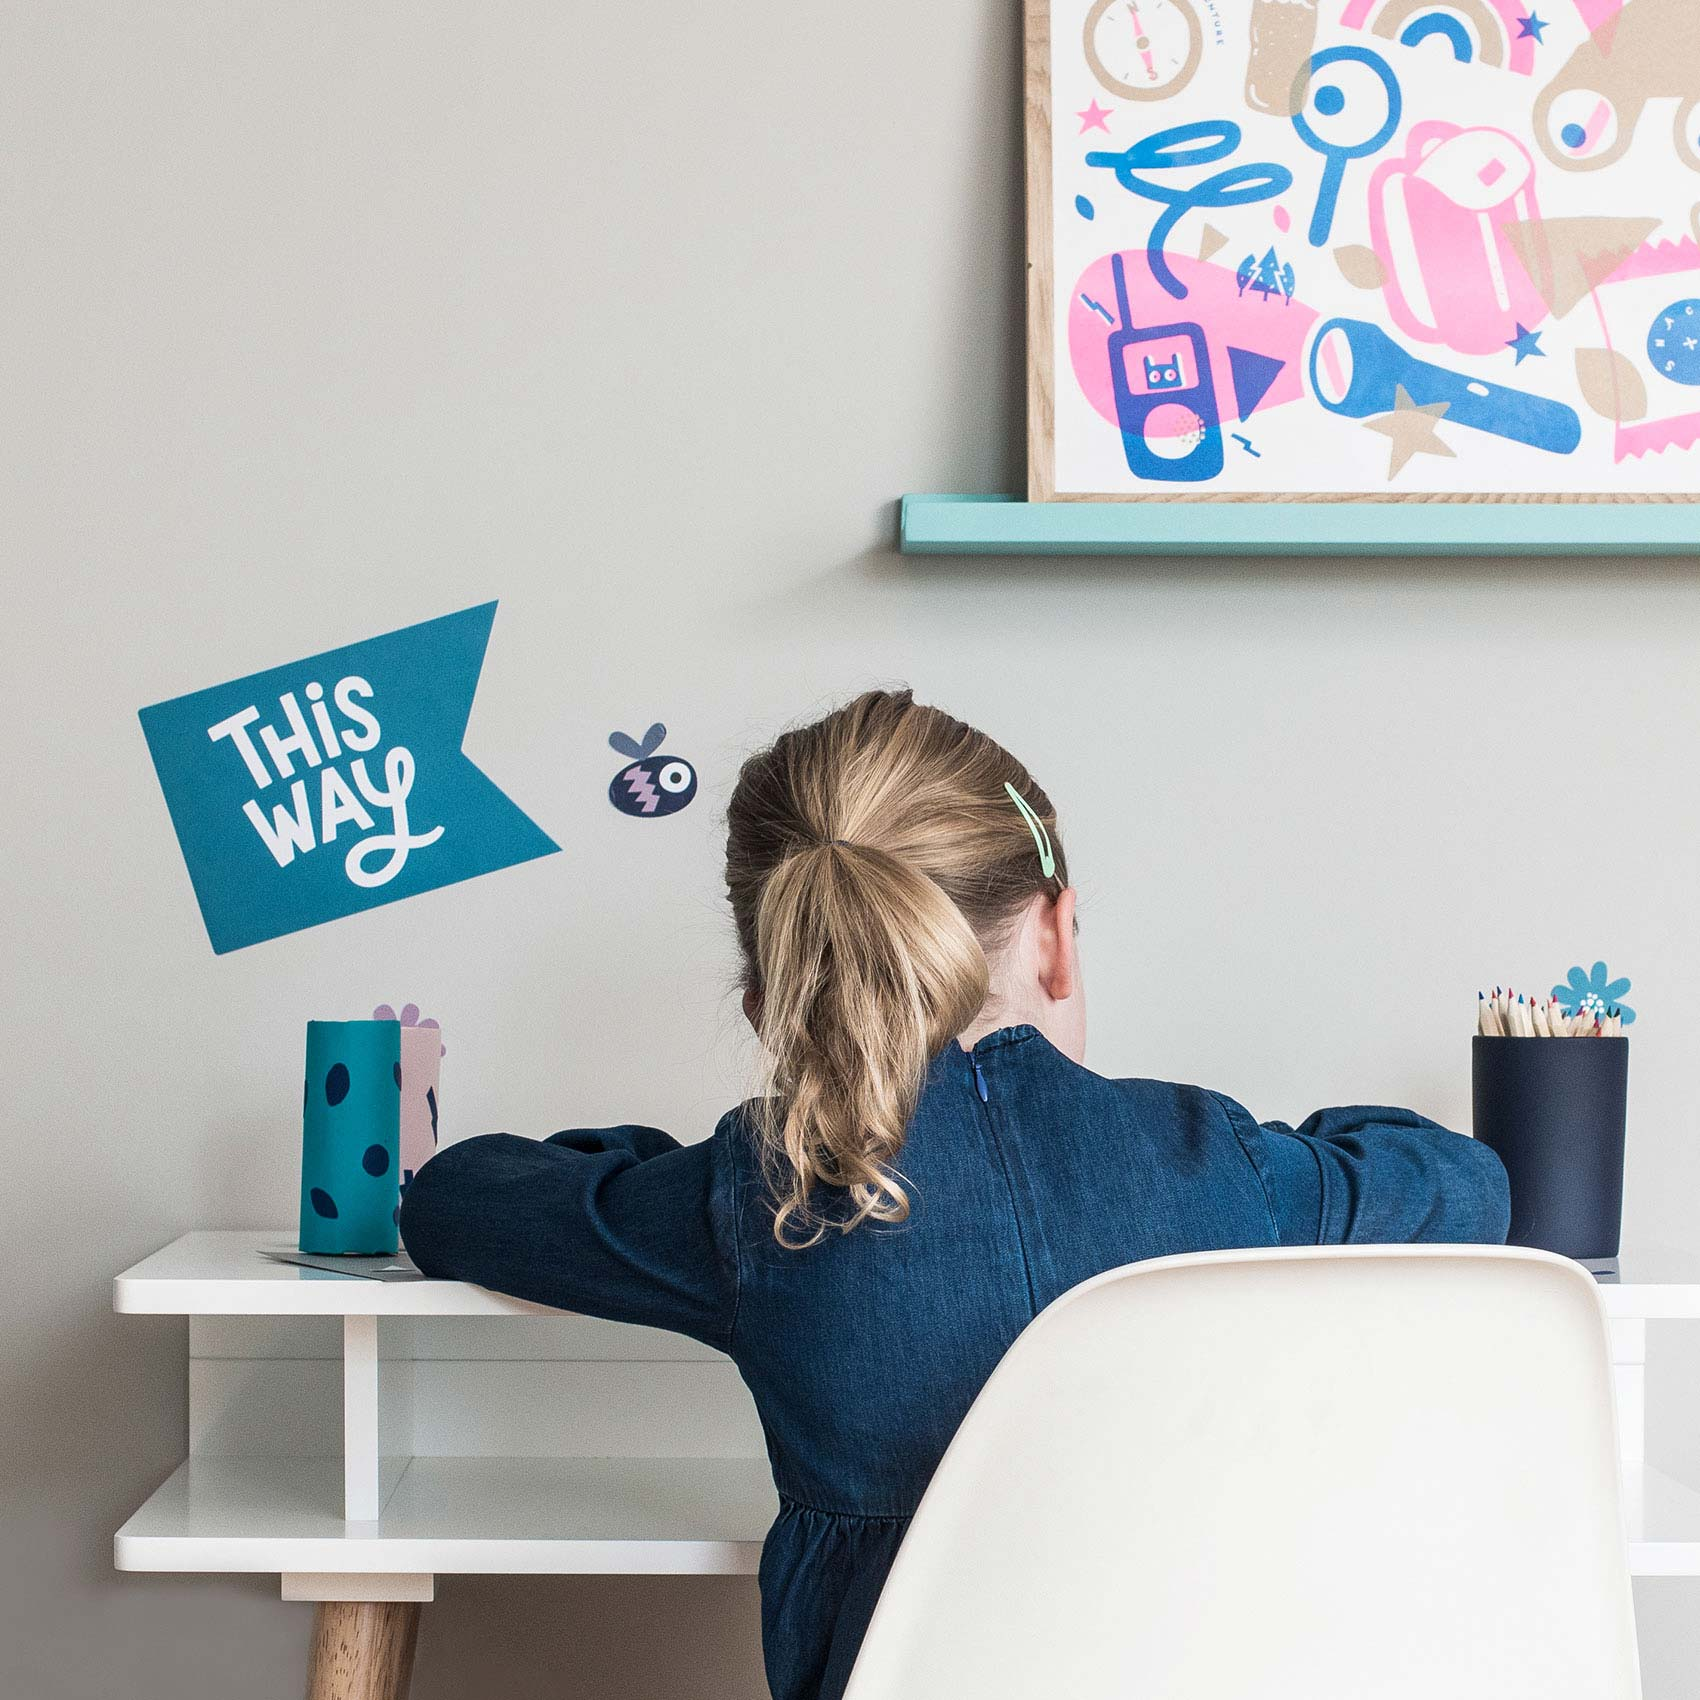 Young girl in Blue dress, sitting at a desk on a white chair. Adventure kit poster sits on a Green picture shelf, as well as a this way wall sticker on the wall.